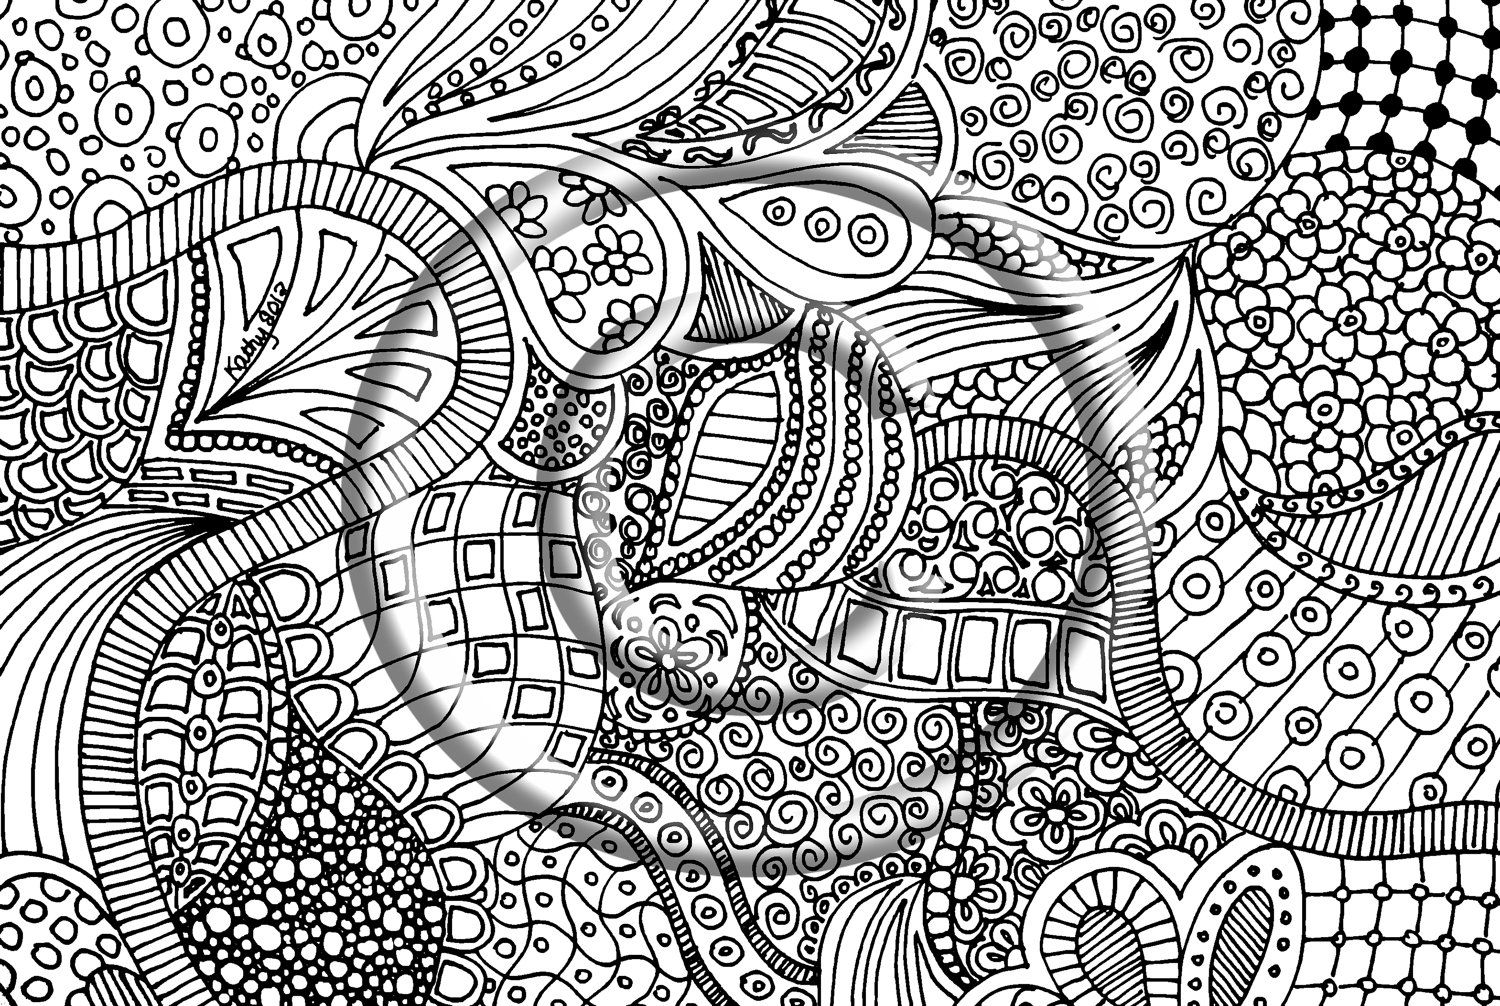 zen art coloring pages zen antistress abstract pattern inspired anti stress coloring art pages zen